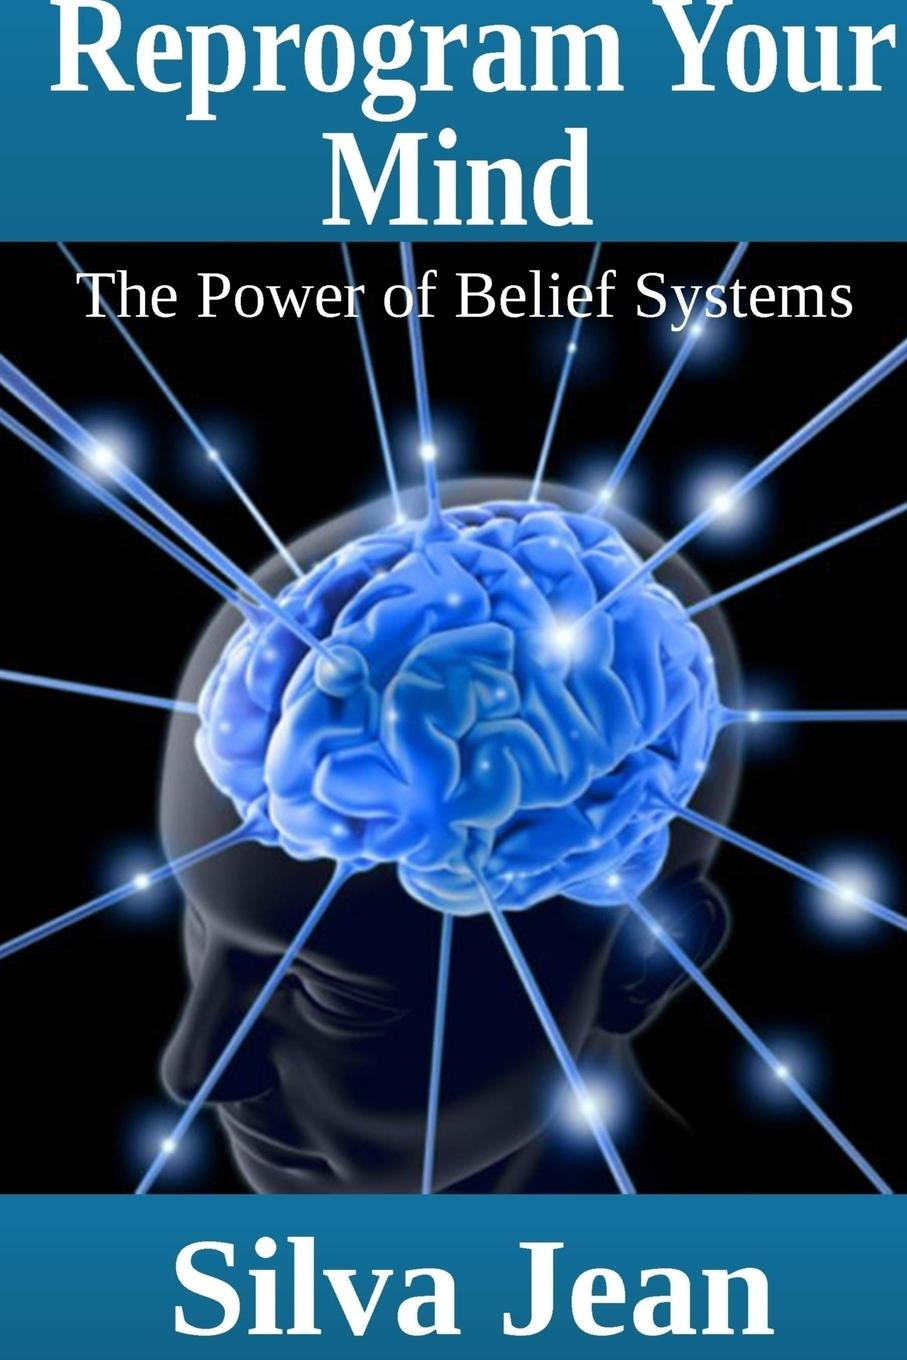 Silva Jean Reprogram Your Mind. The Power of Belief Systems irrational beliefs